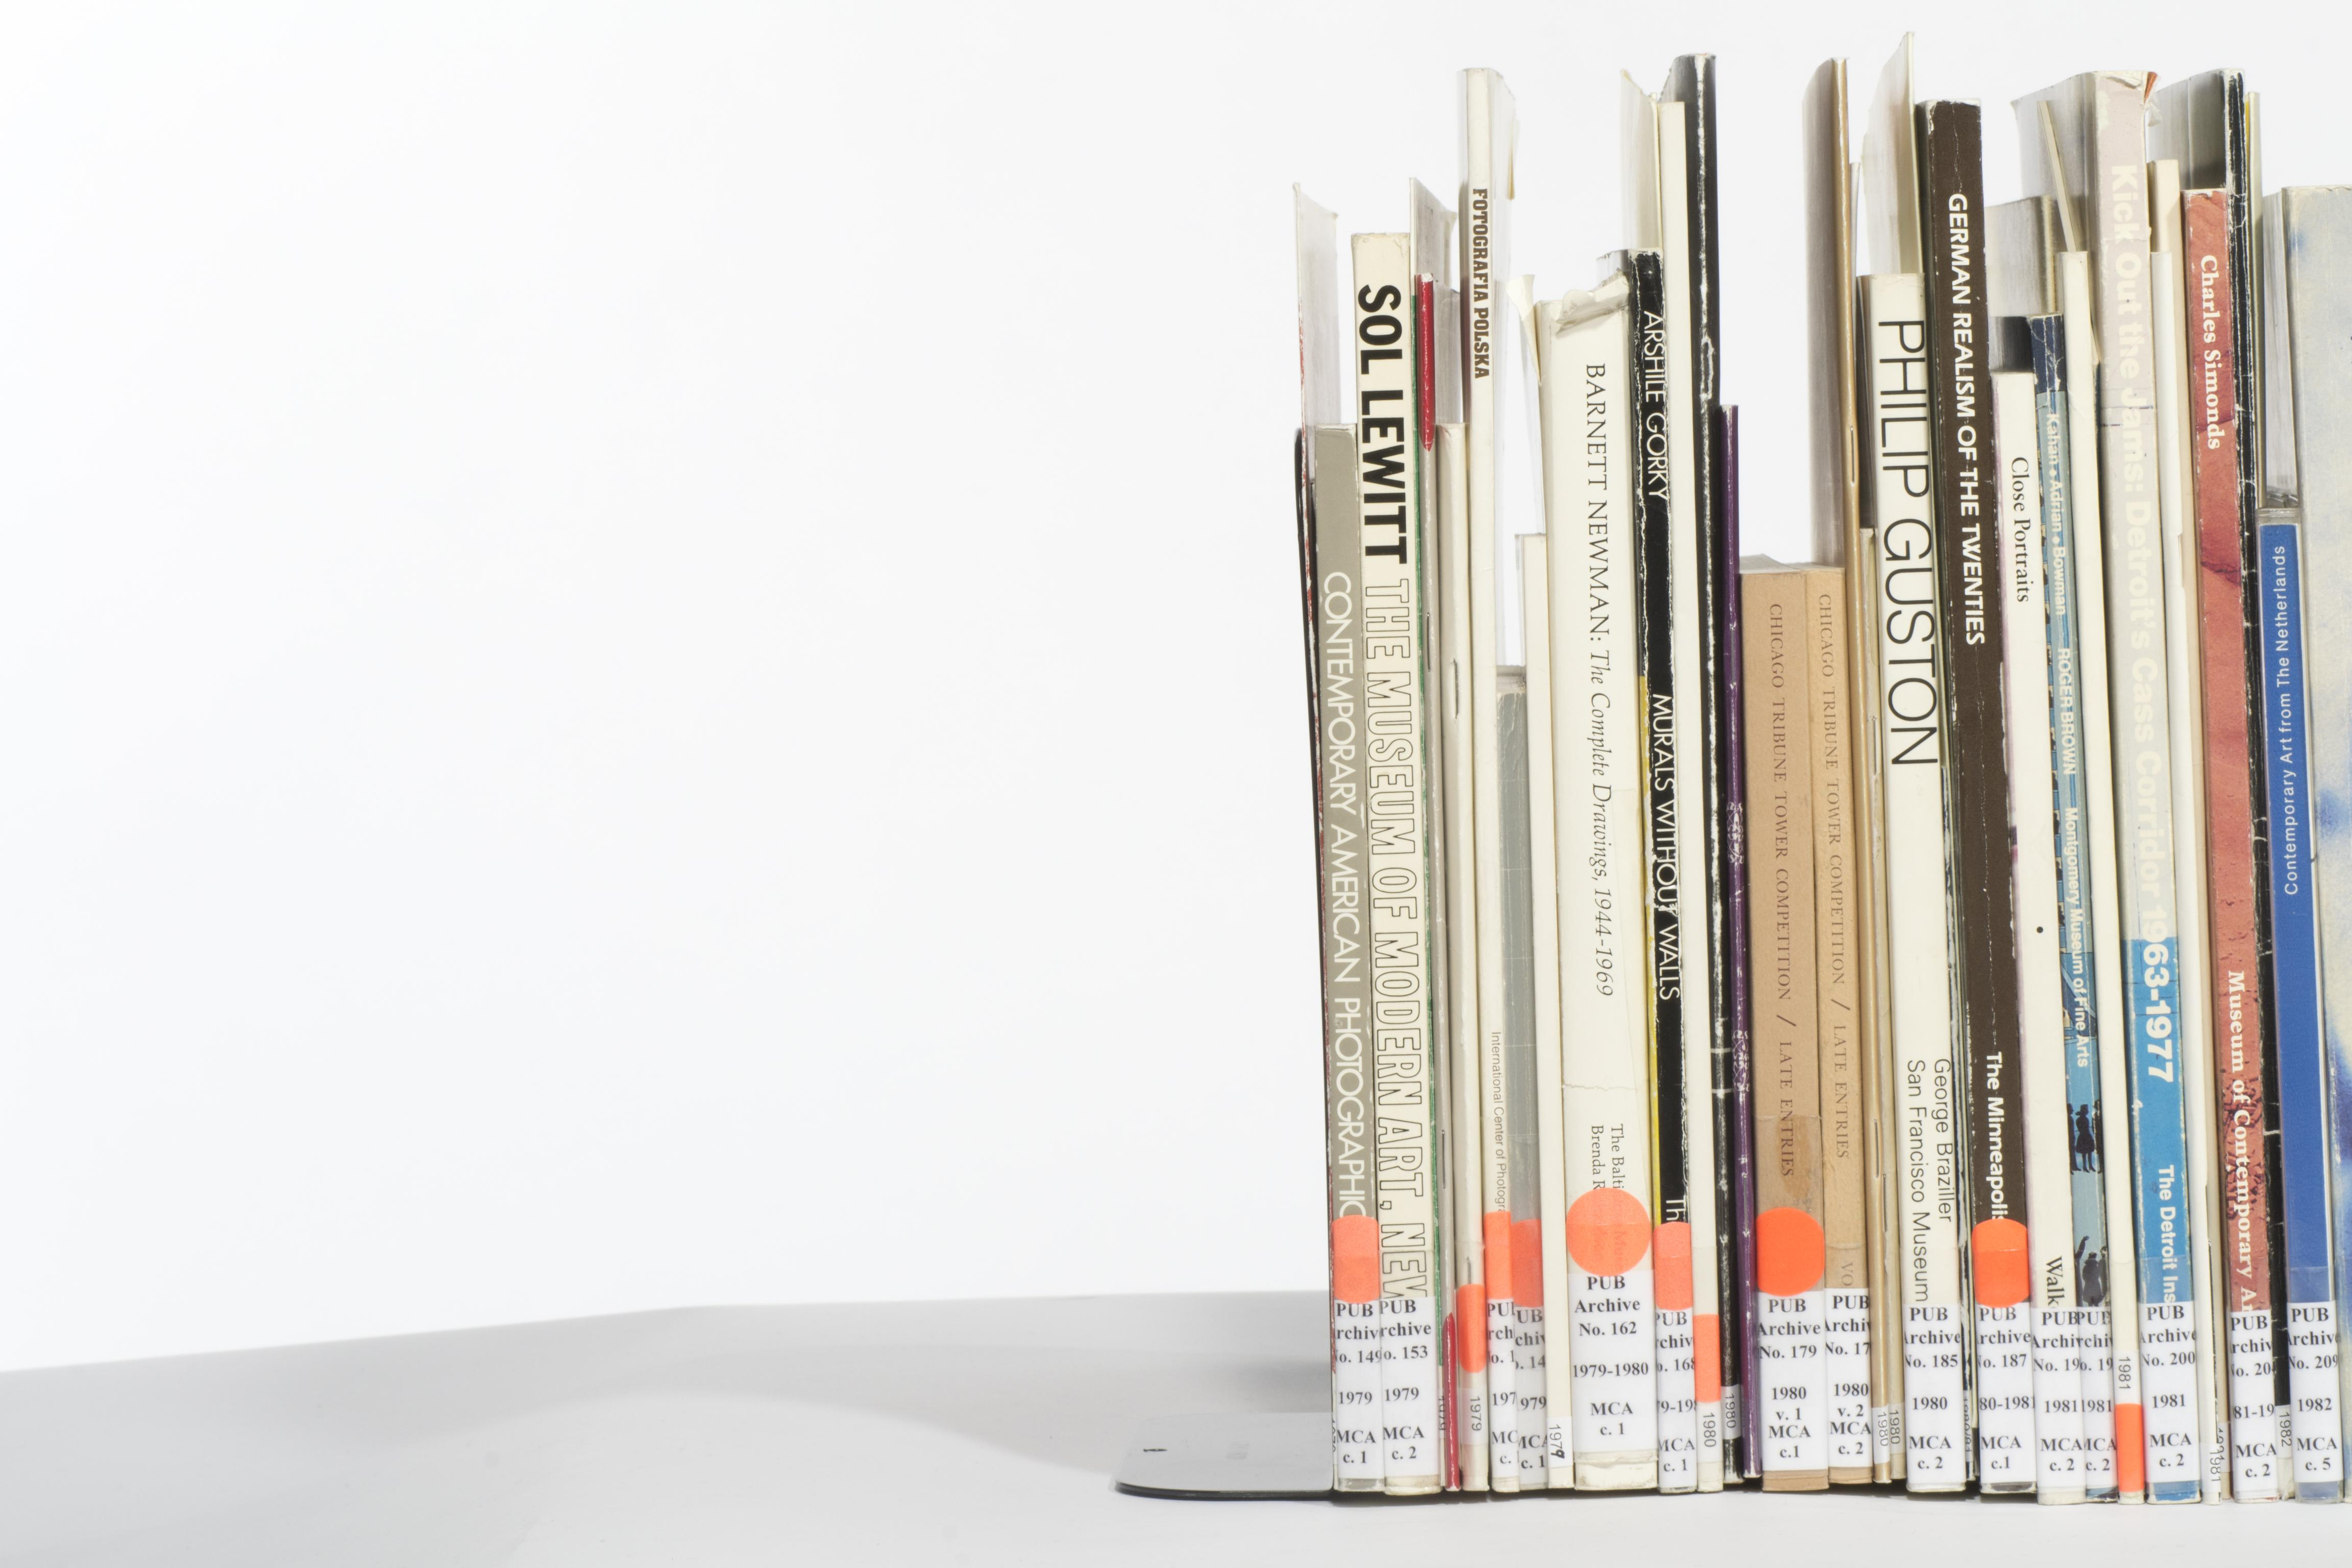 A group of catalogs with library call numbers are lined tightly next to one another on the right side of the frame.